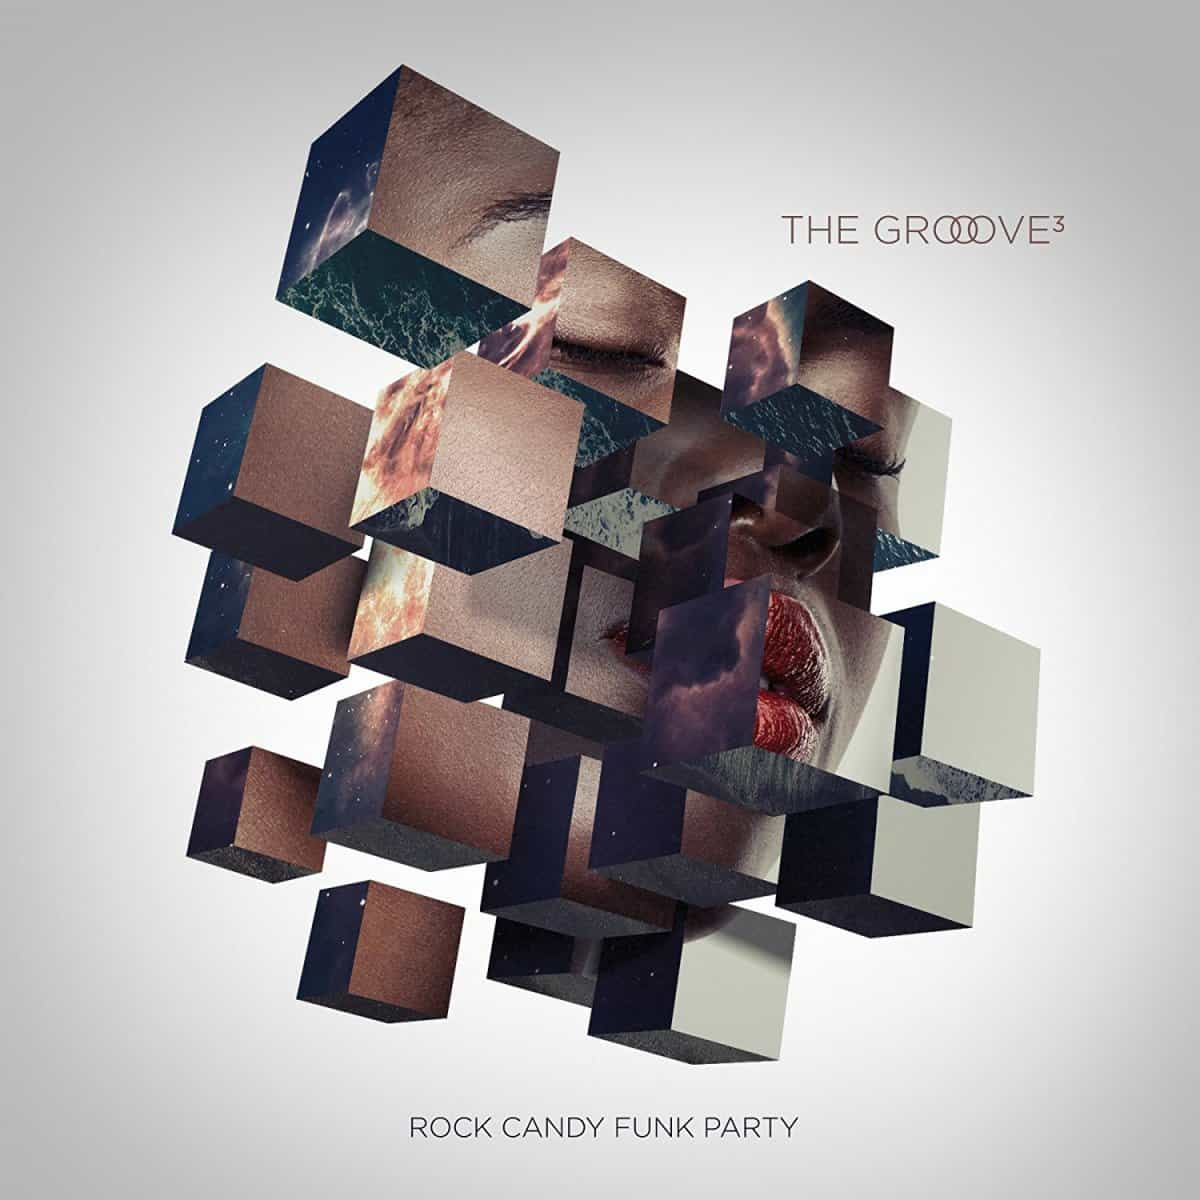 Rock-Candy-Funk-Party-The-Groove-Cubed-1200x1200